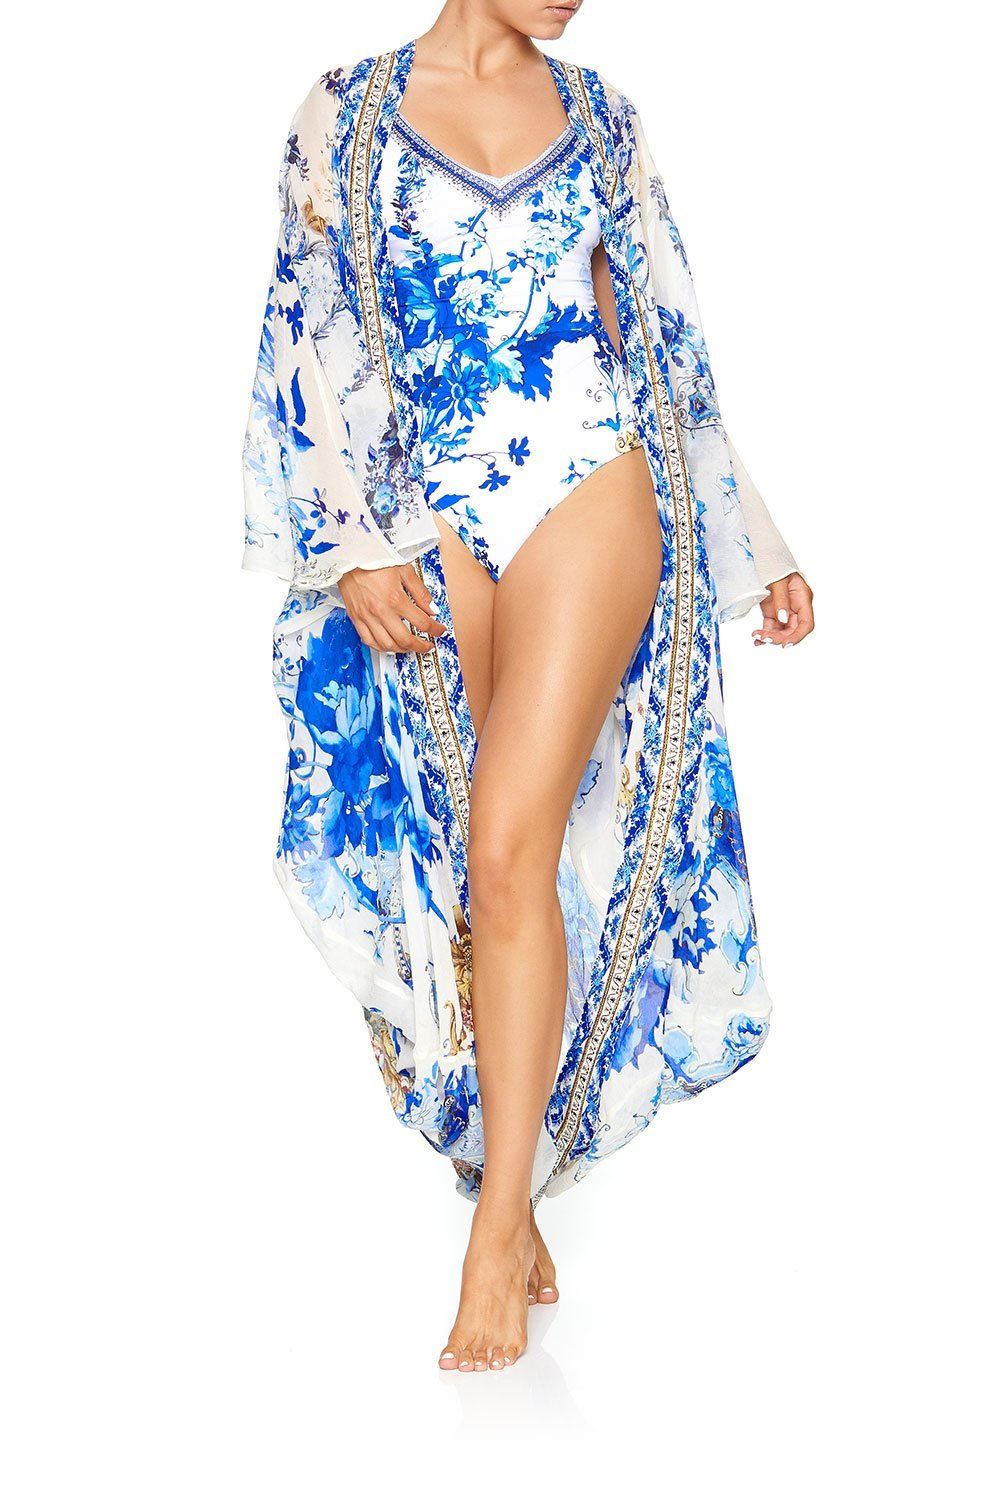 camilla_rouched_side_v_neck_one_piece_saint_germaine_3_a5d391c6-7d28-475f-a8db-8f1584e6123a_1024x1024@2x